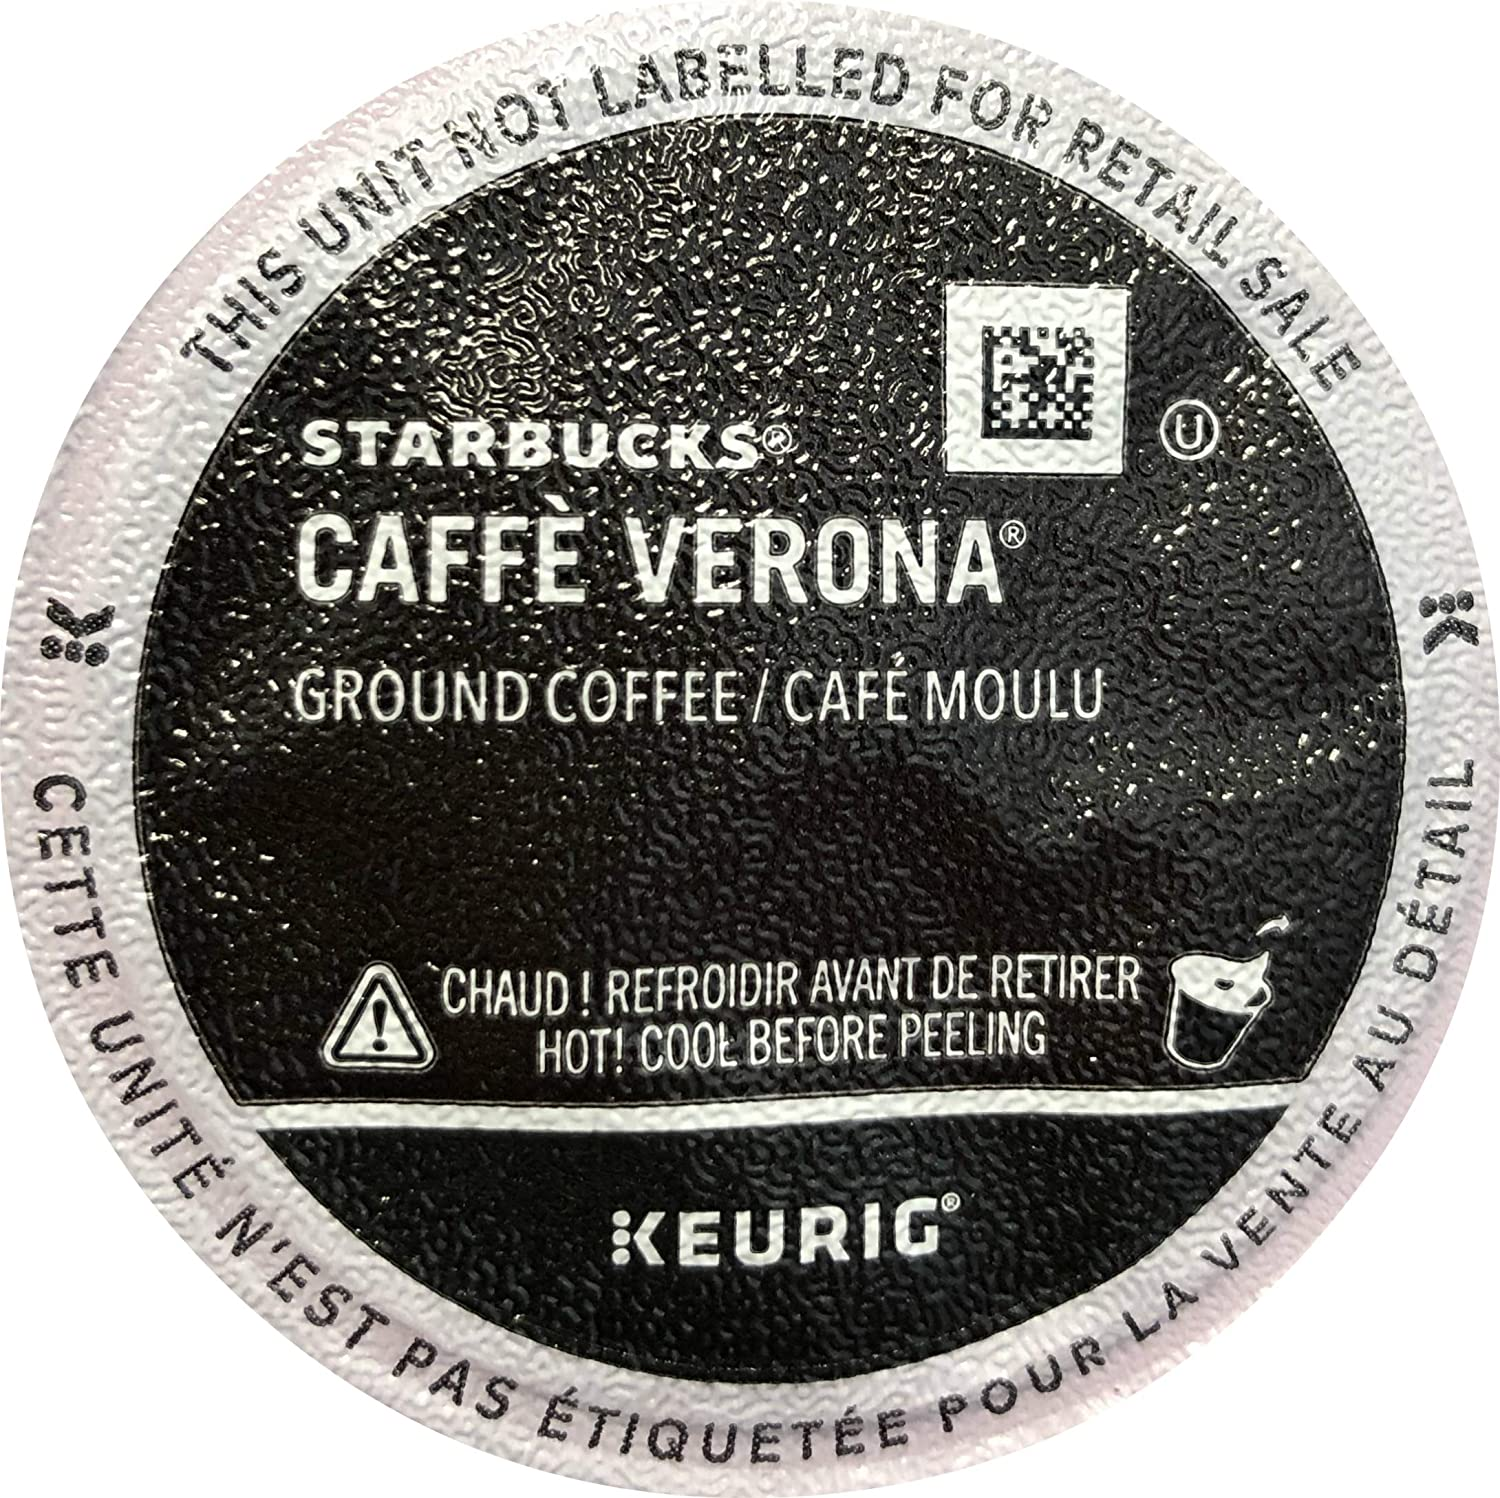 Starbucks Caffe Verona K-Cups, 72 Count (Packaging May Vary)